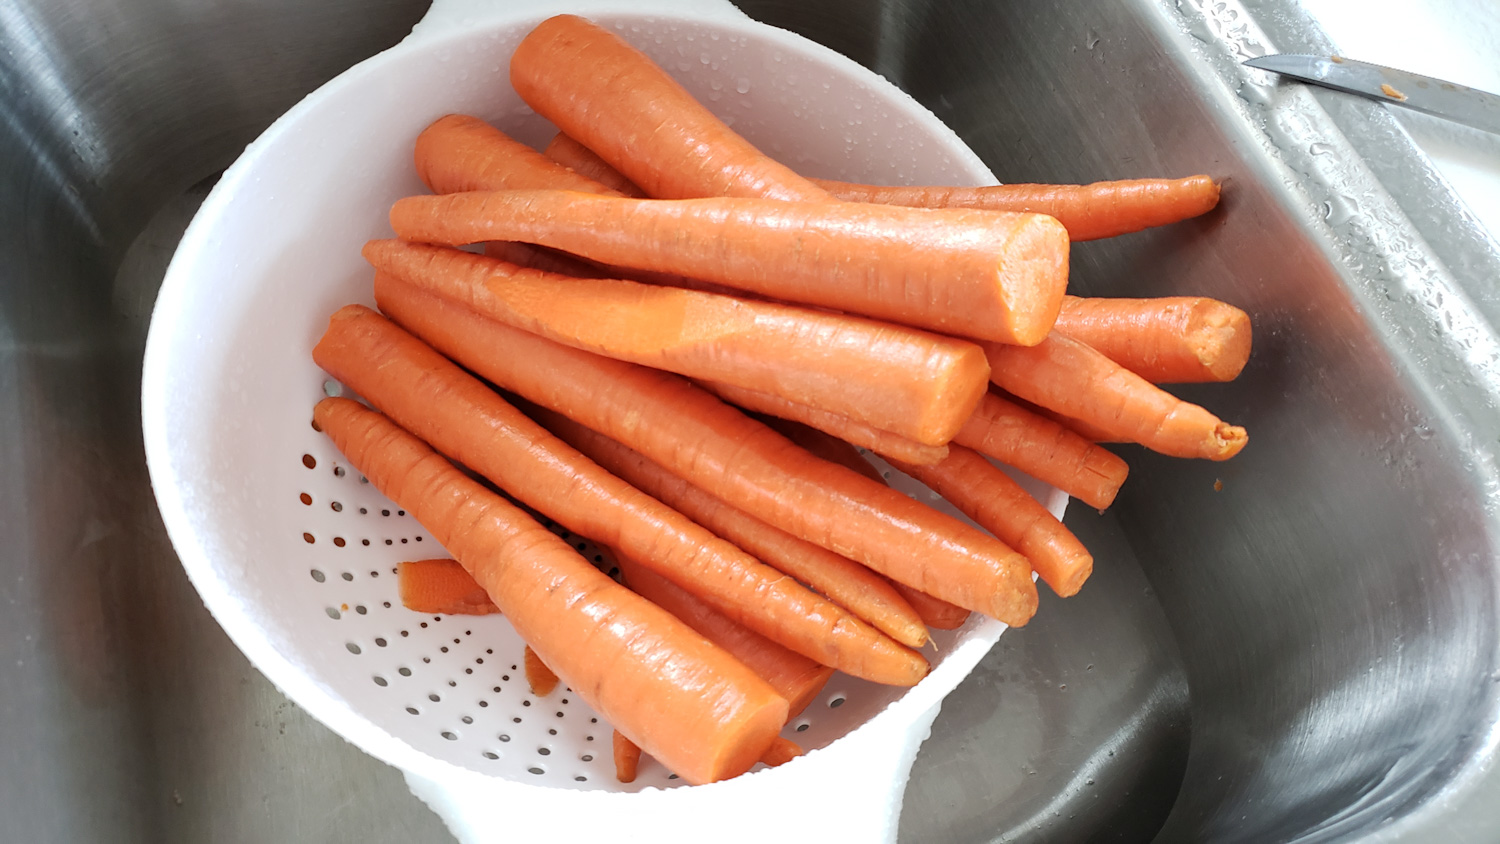 raw carrots getting cleaned